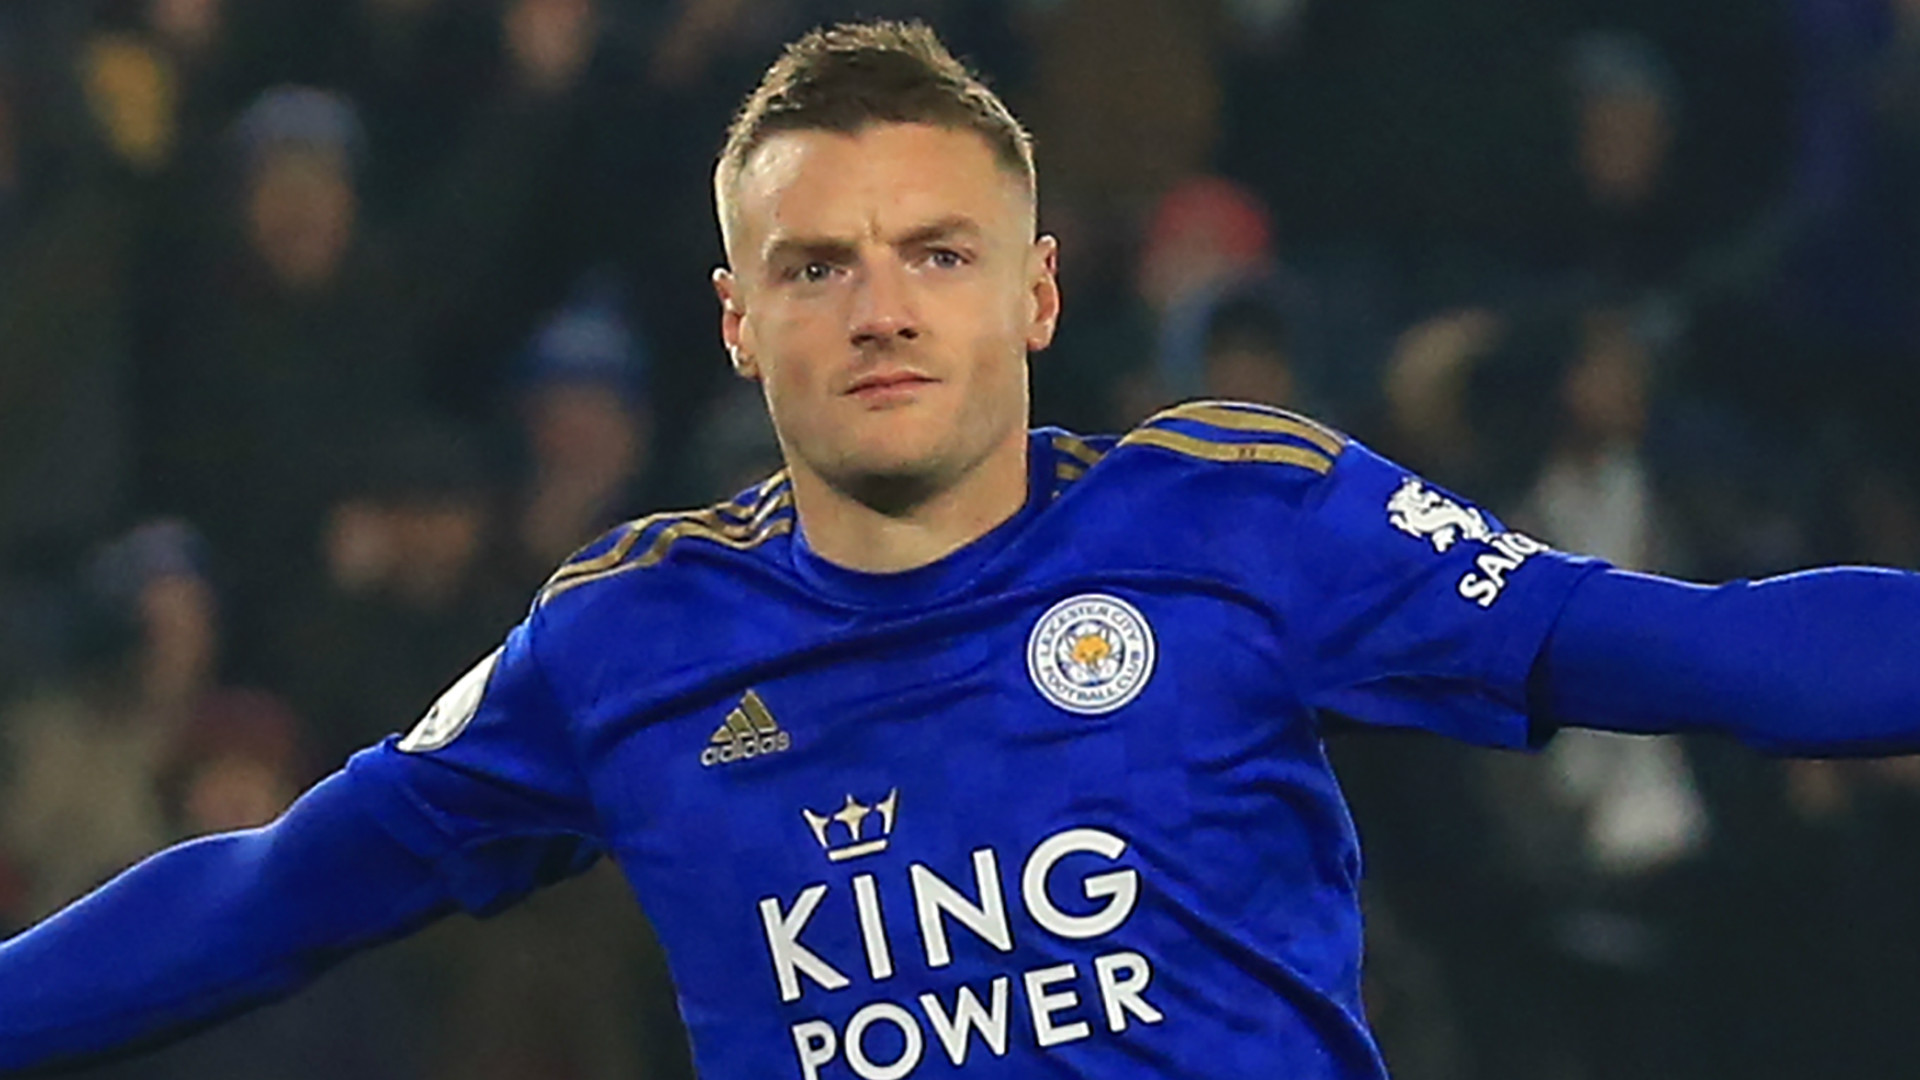 Vardy is 'one of the best in Europe' says Rodgers, as Leicester star targets goalscoring record